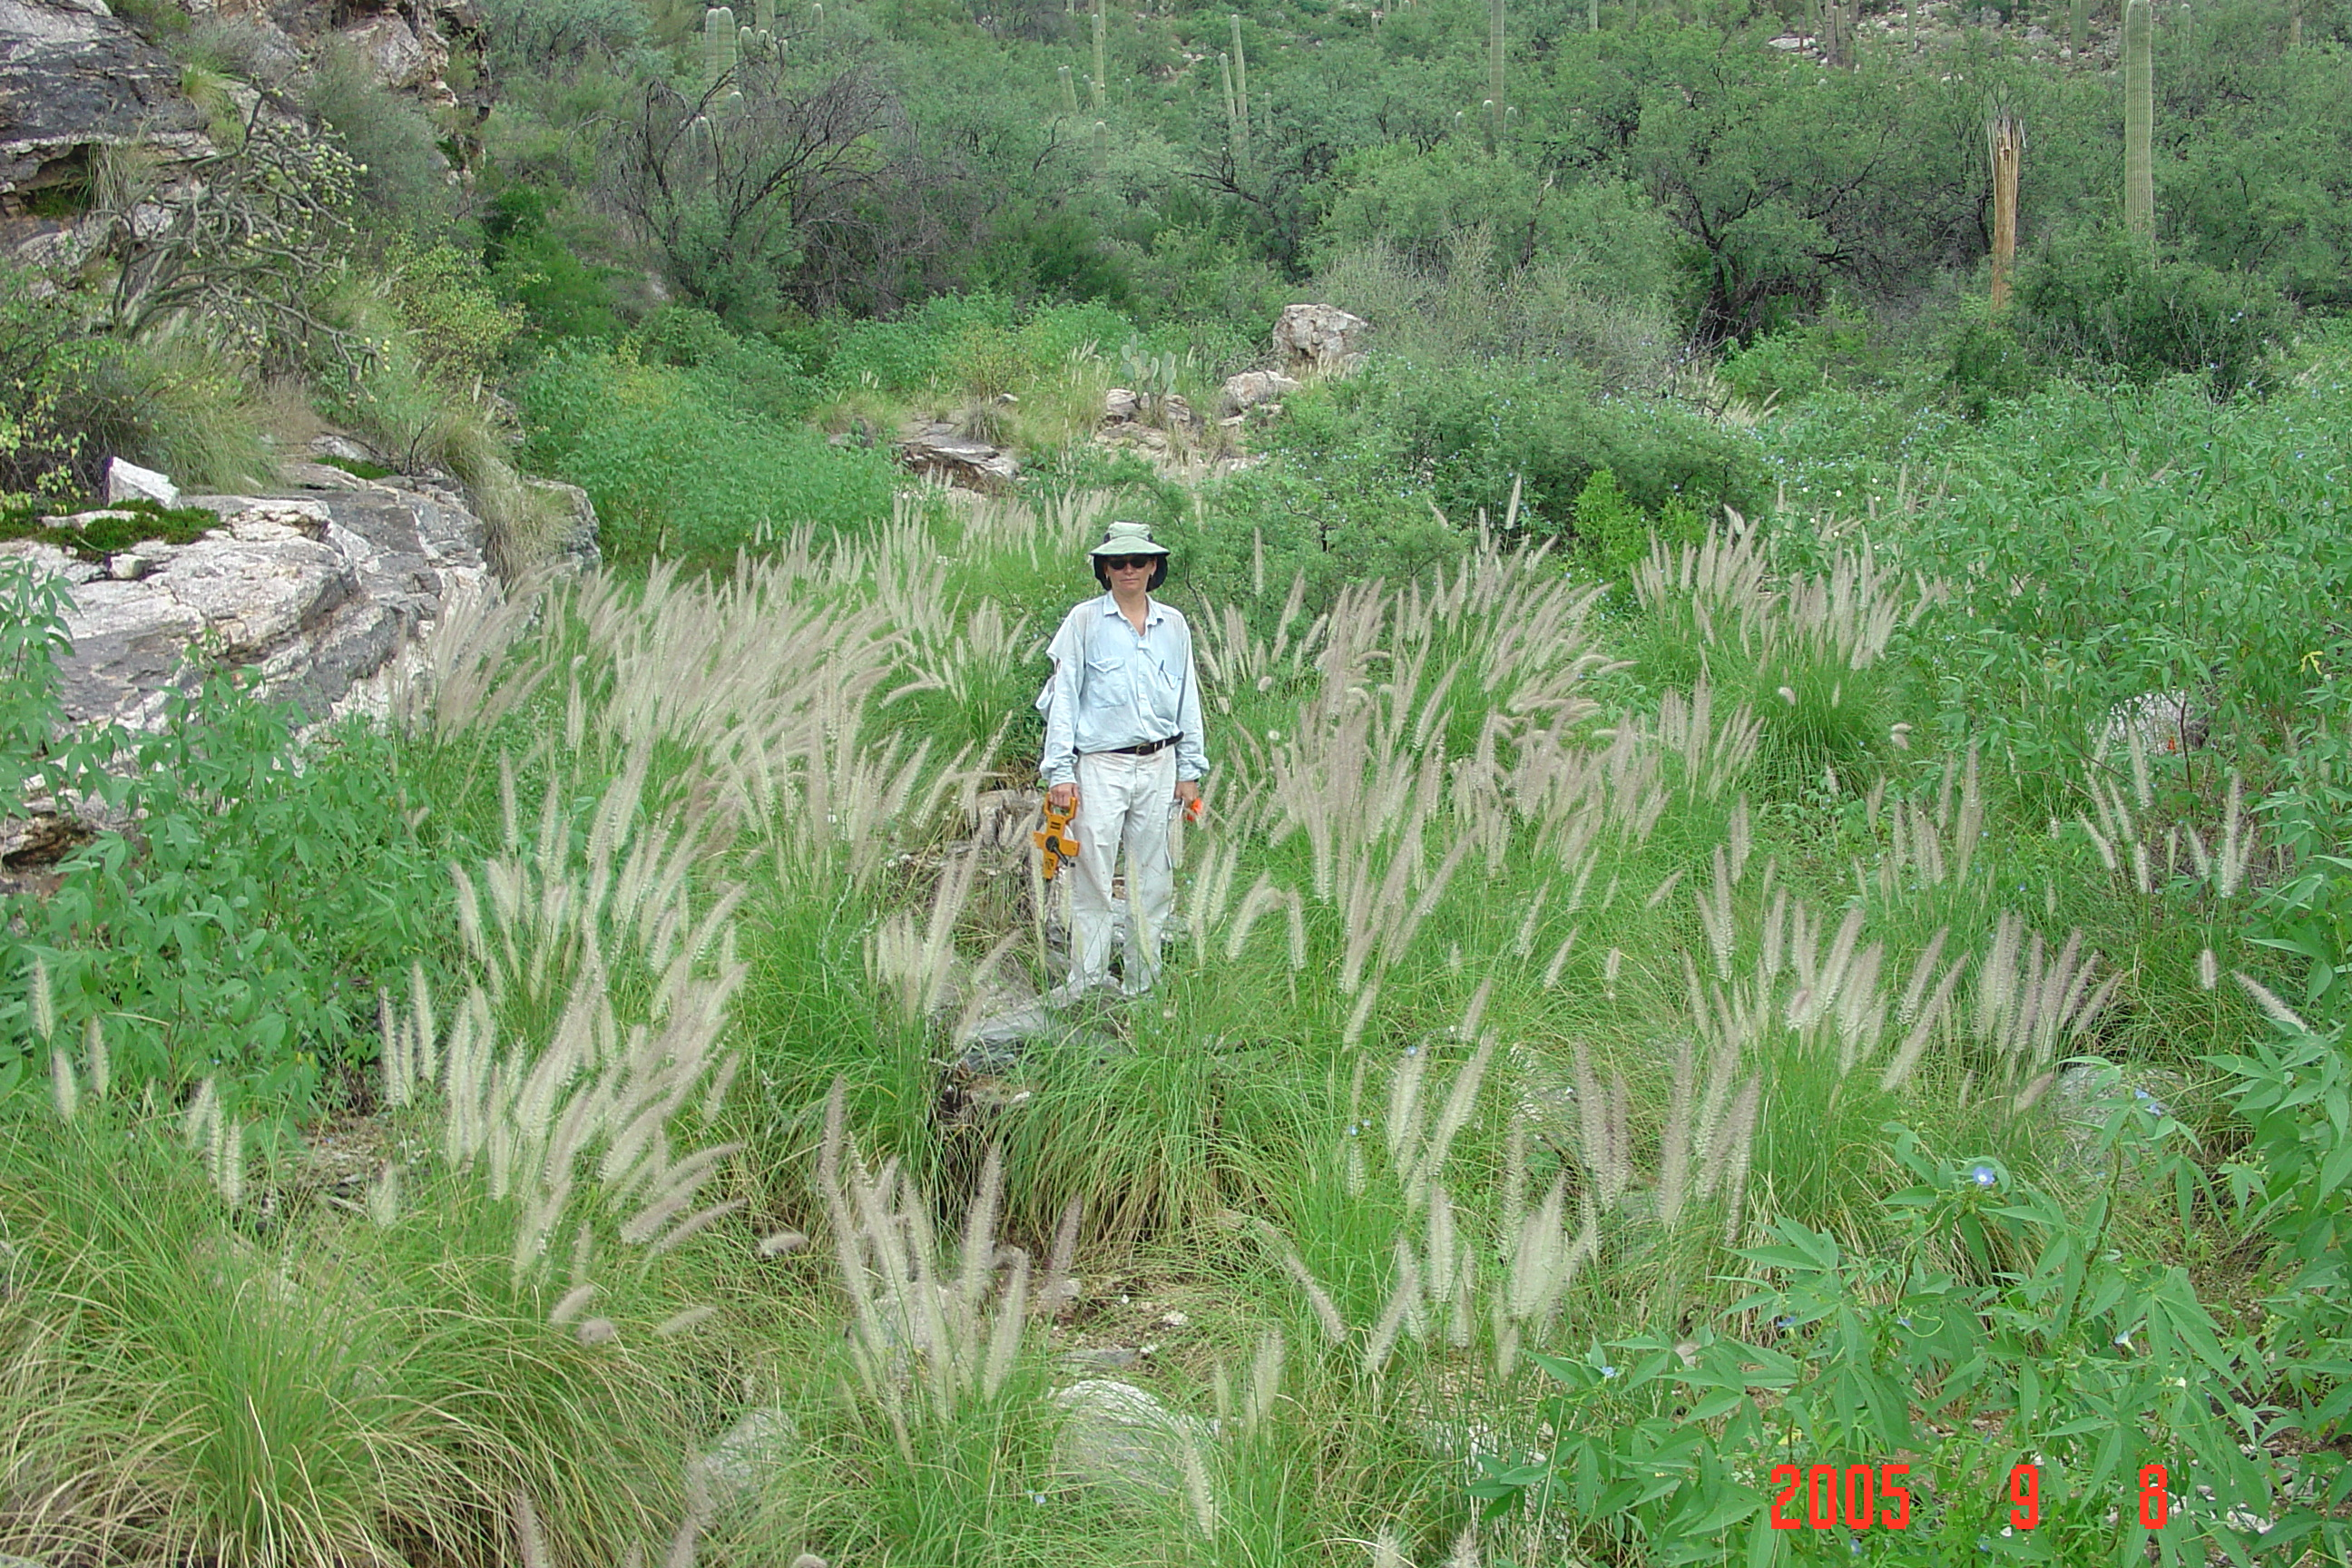 Fountain grass in a riparian area